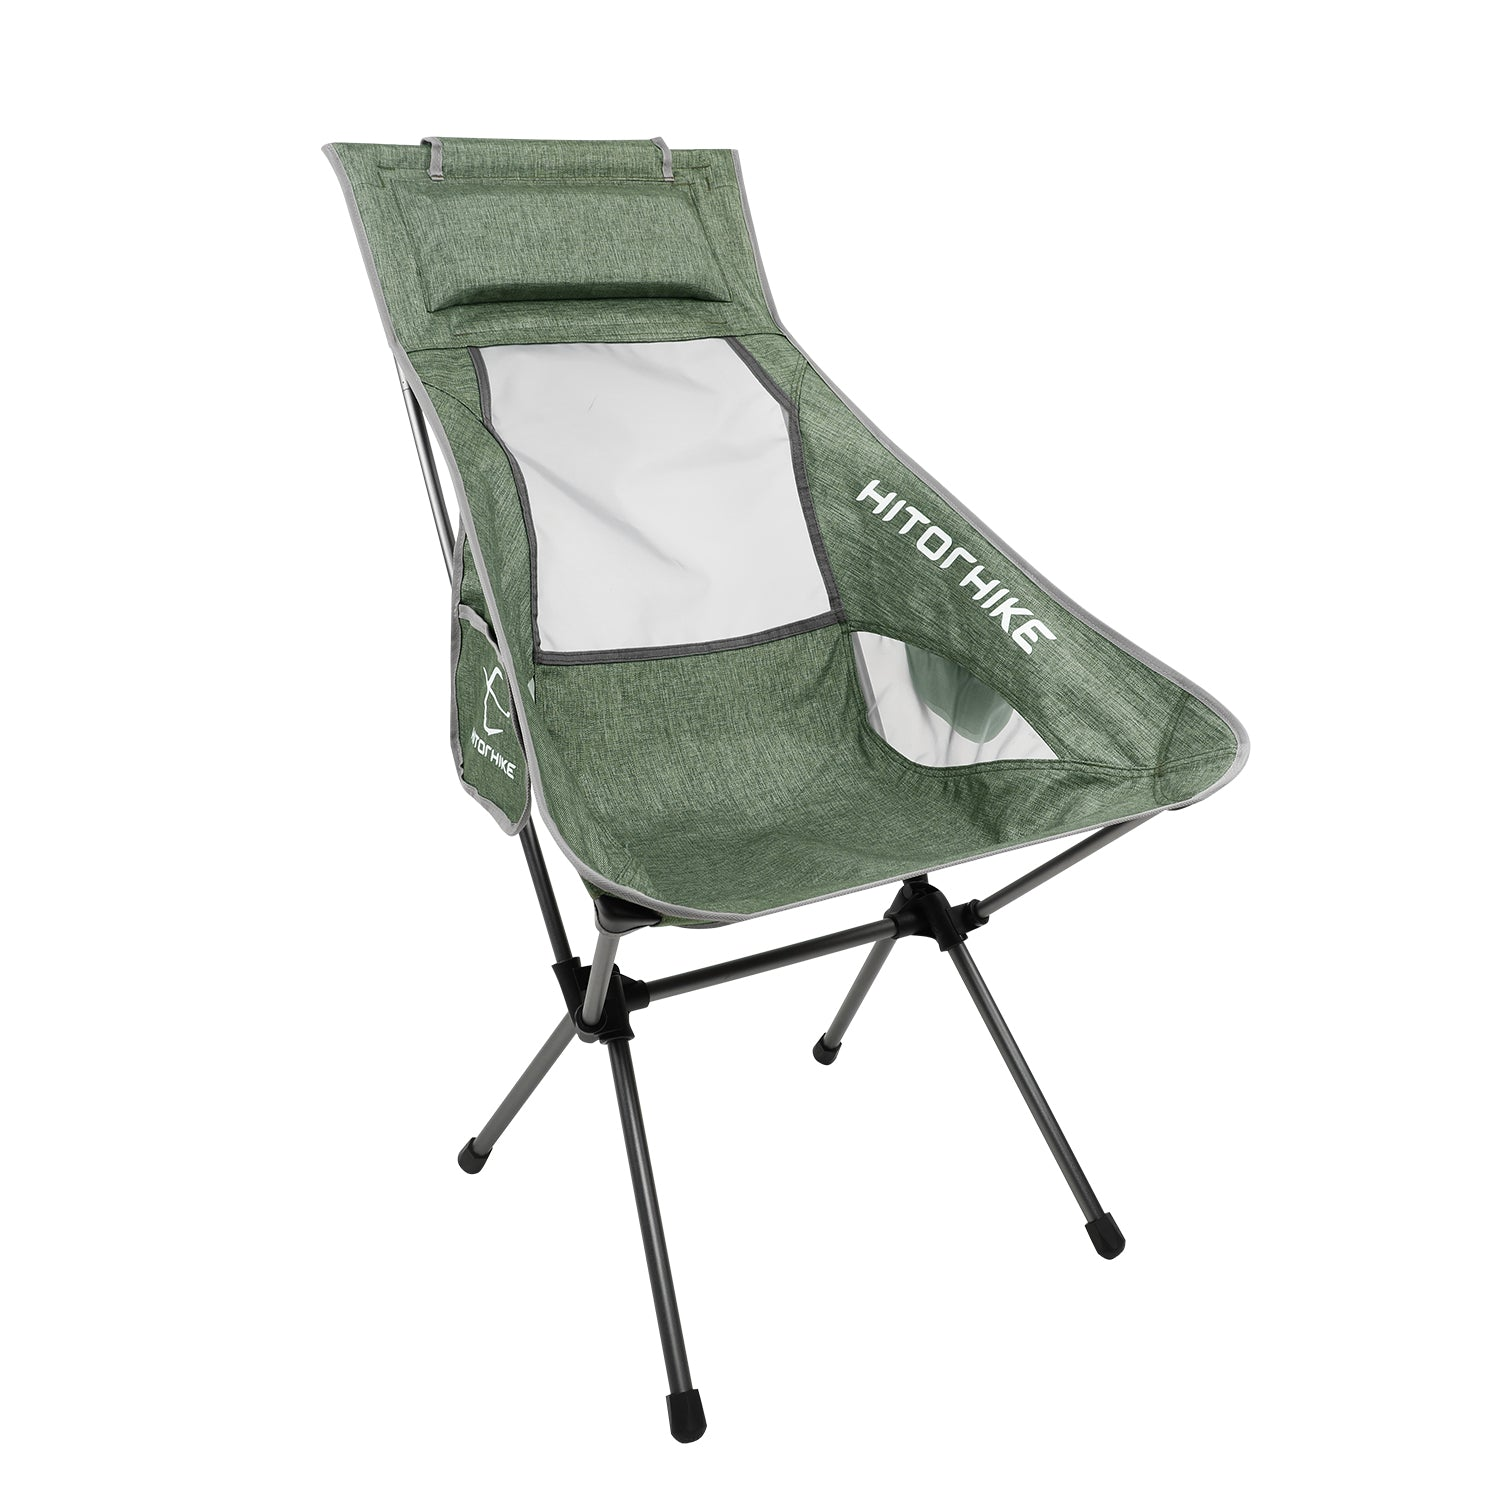 Hitorhike Camping Chair with Nylon Mesh and Comfortable Headrest Ultralight High Back Folding Camp Chair Portable Compact for Camping, Hiking, Backpacking, Picnic, Festival, Family Road Trip(Green)